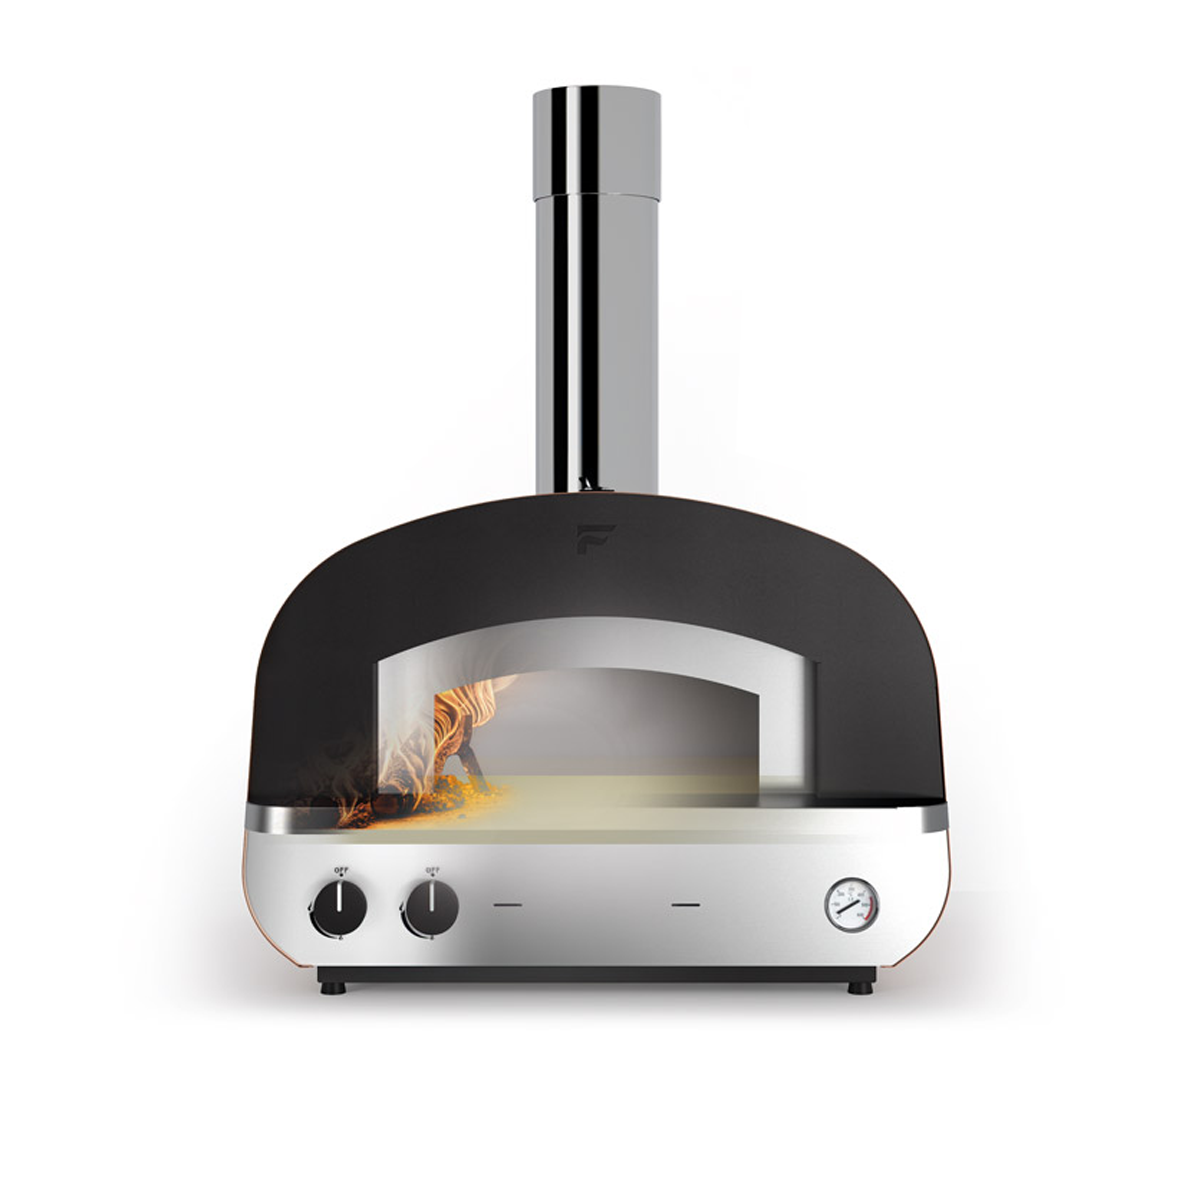 Fontana Piero Build In Gas & Wood Fired Pizza Oven